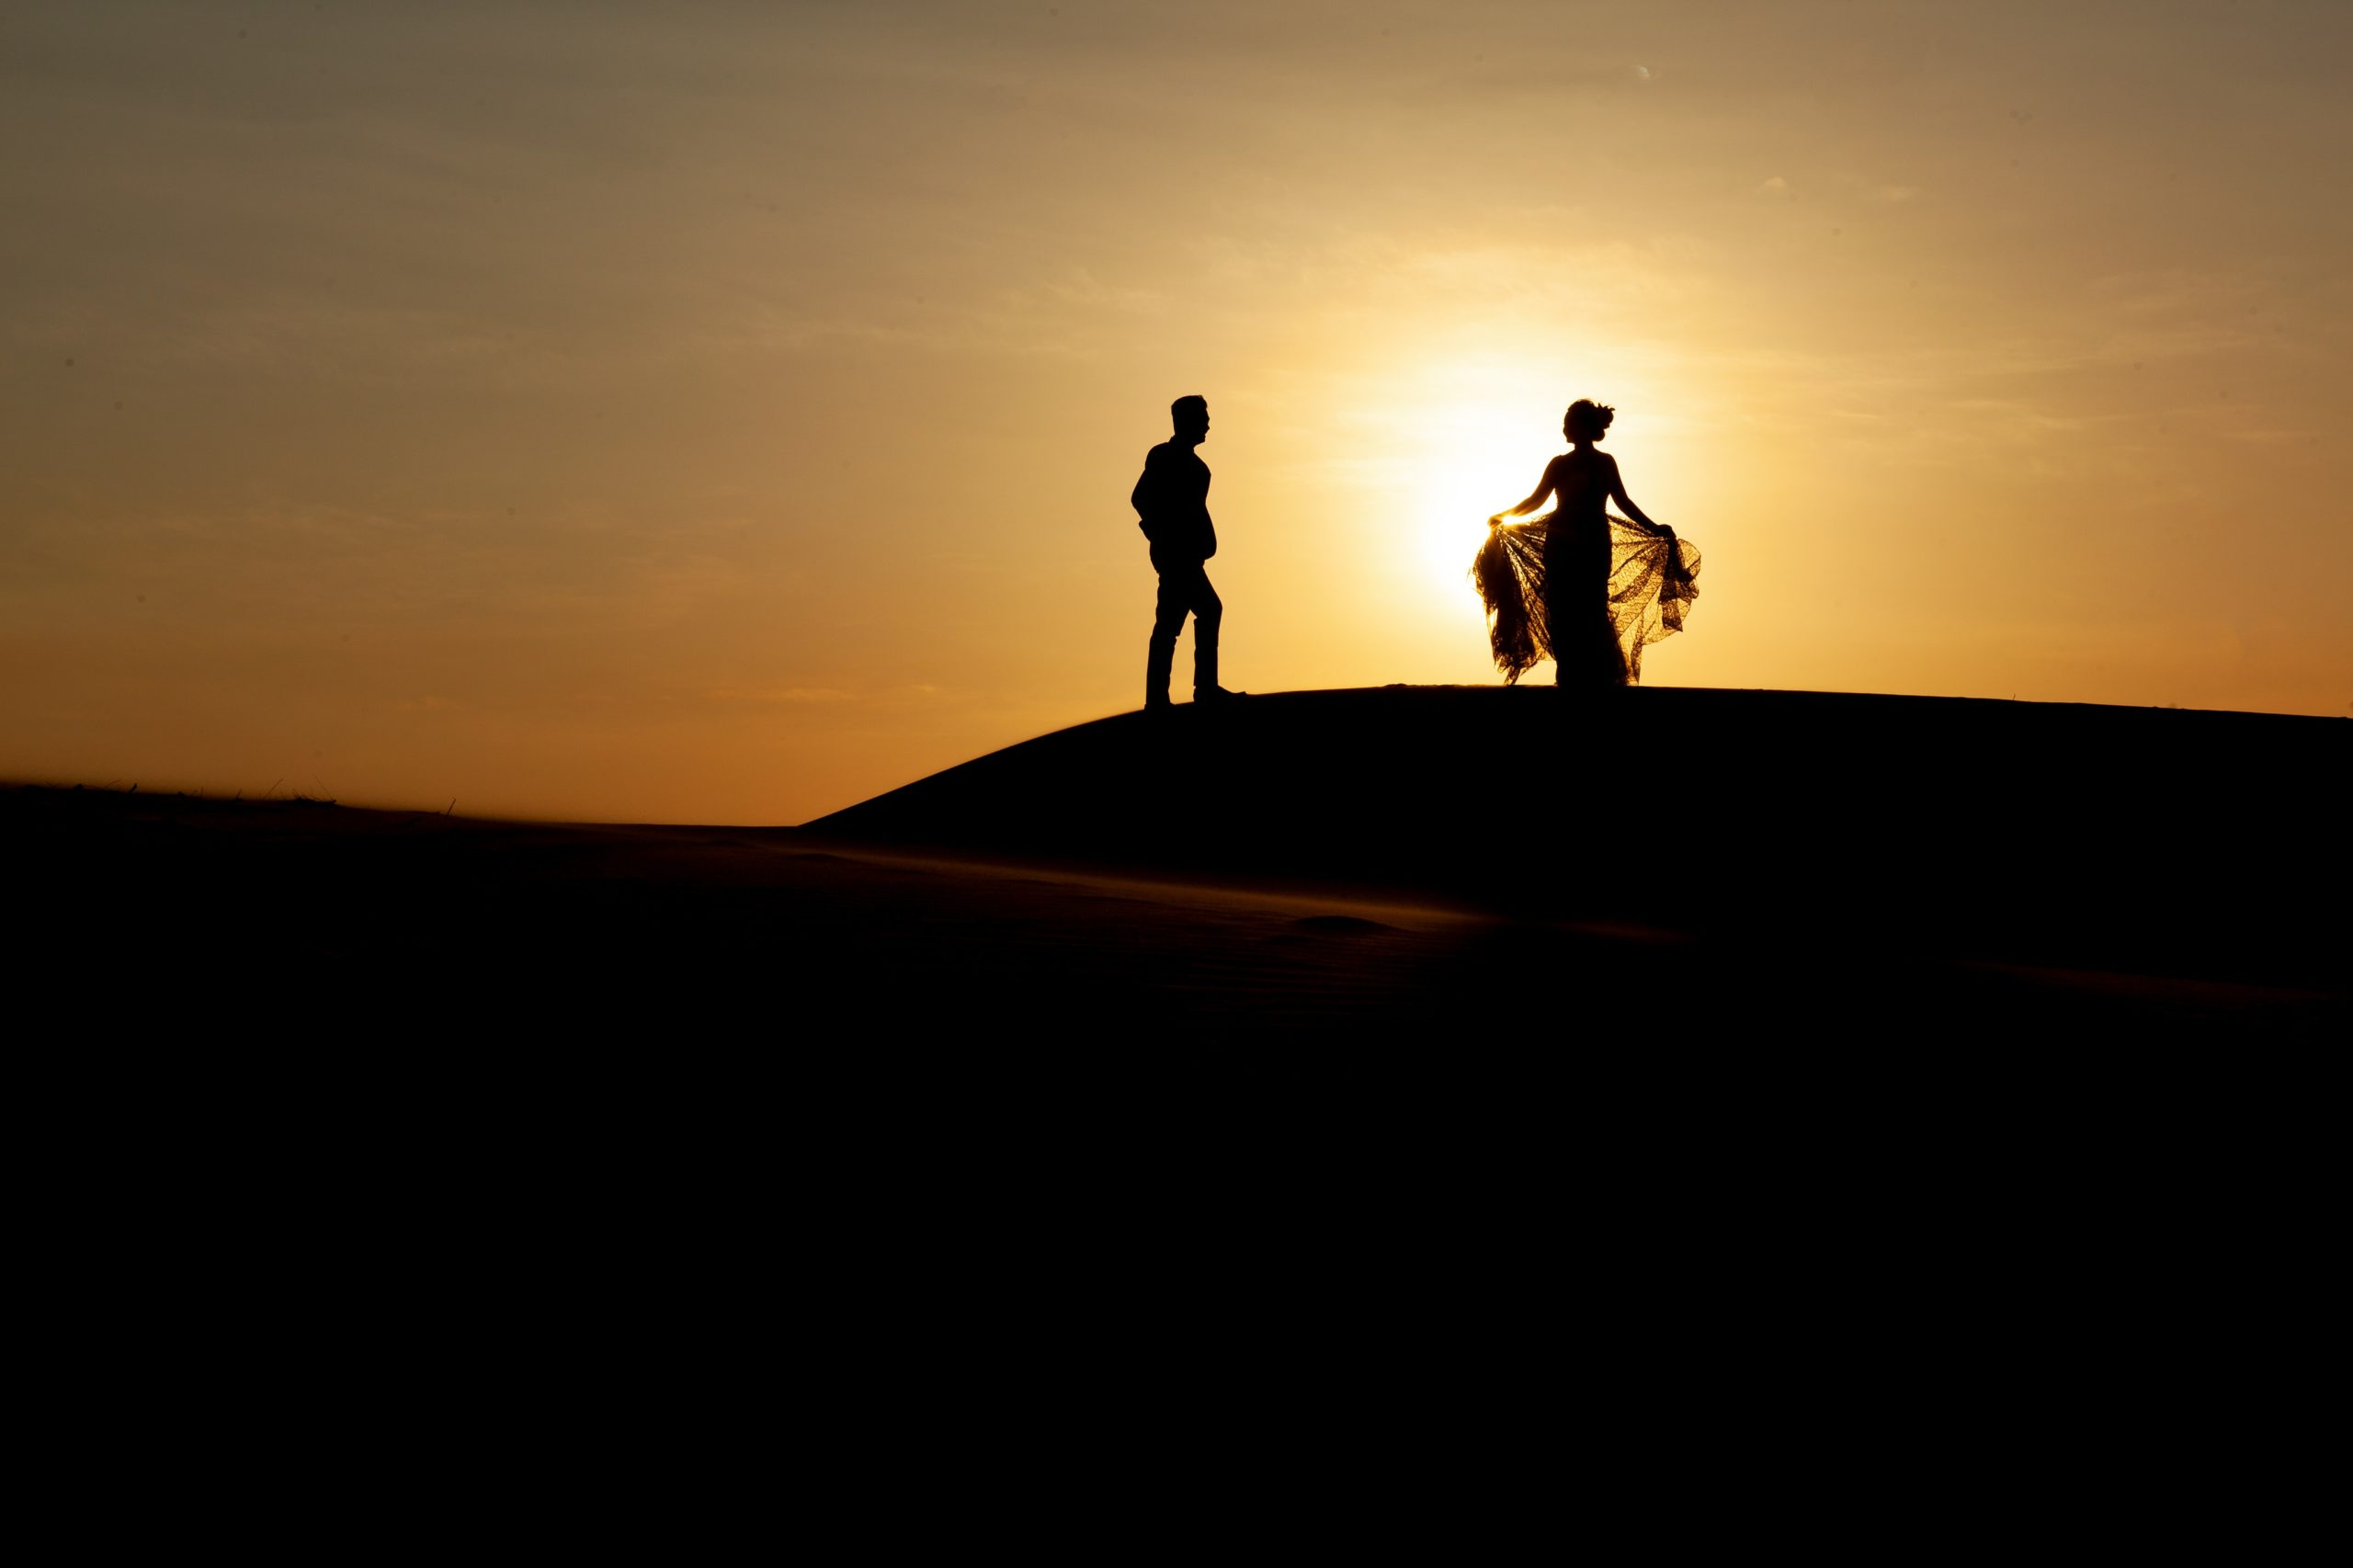 silhouette-of-two-people-walking-on-sand-during-sunset-3998369